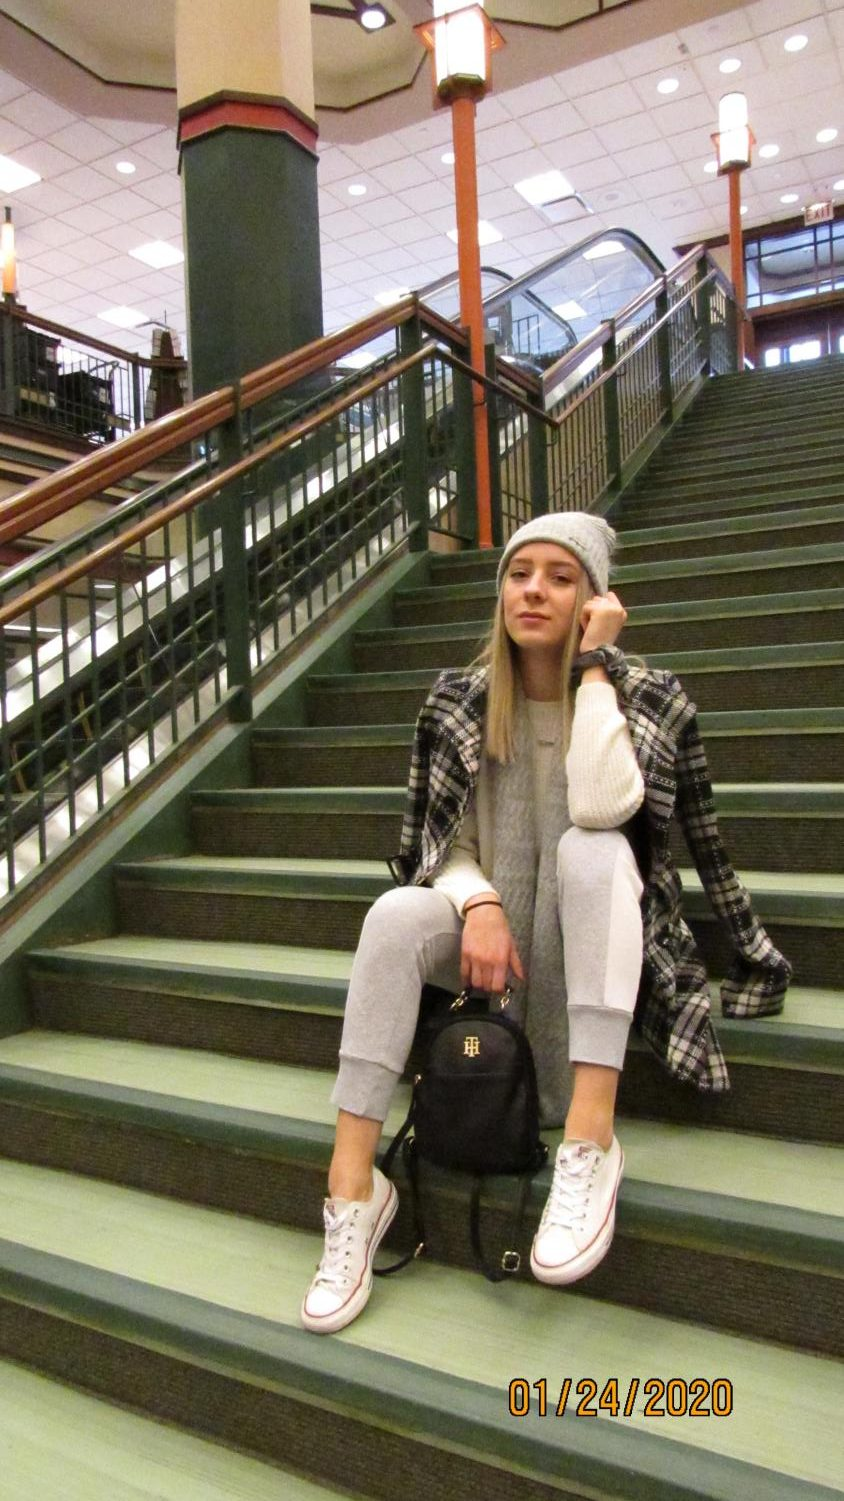 Use+beanies+and+bags+as+cute+accessories.+